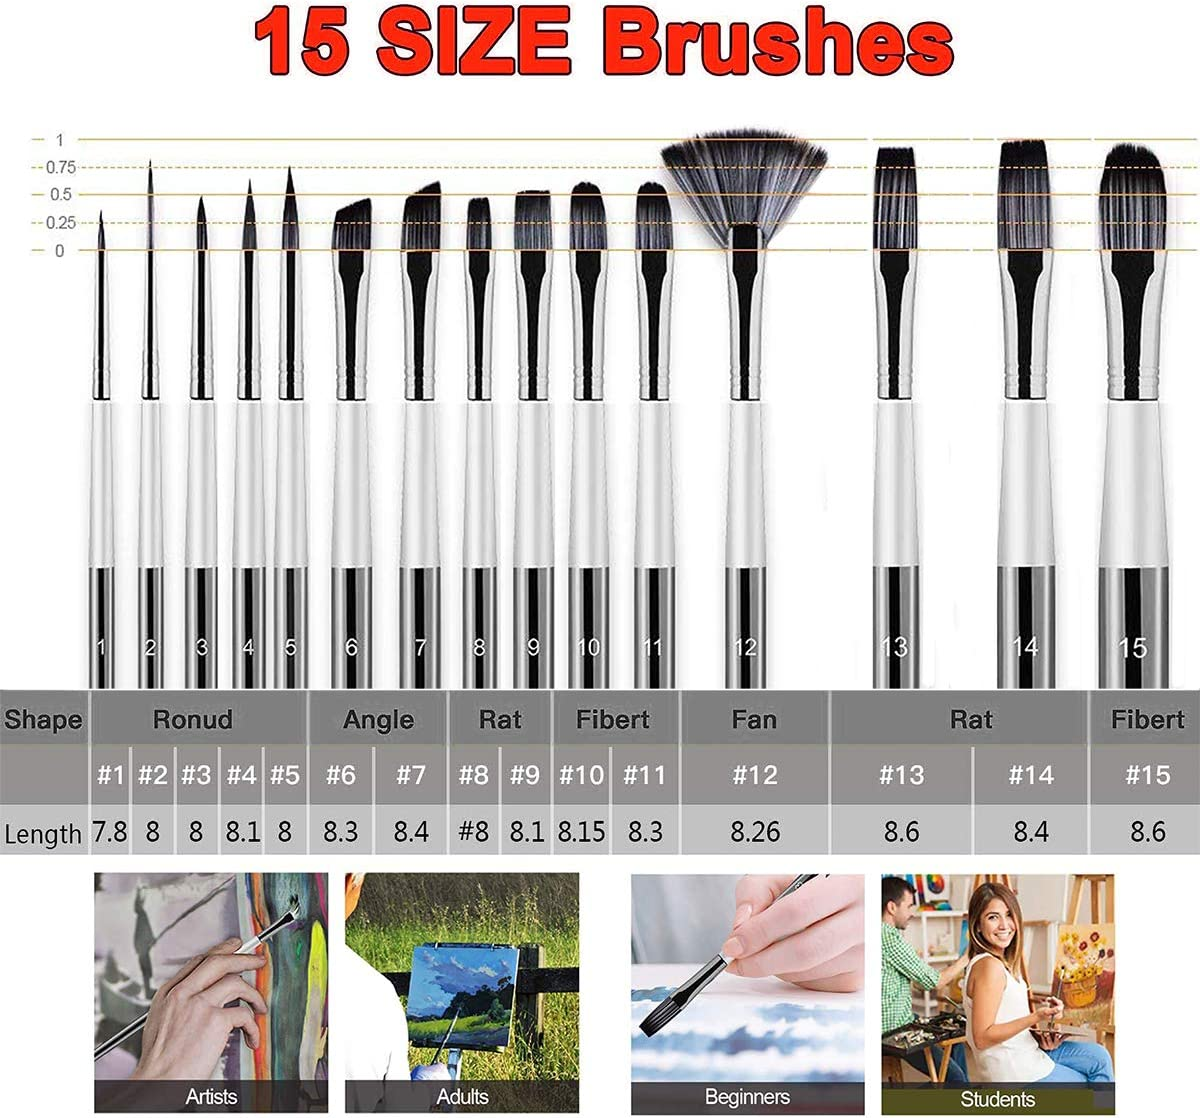 12 Pieces Artist Face and Body Professional Painting Kits with Nylon Tips Watercolor Oil Acrylic Paint Brushes Set